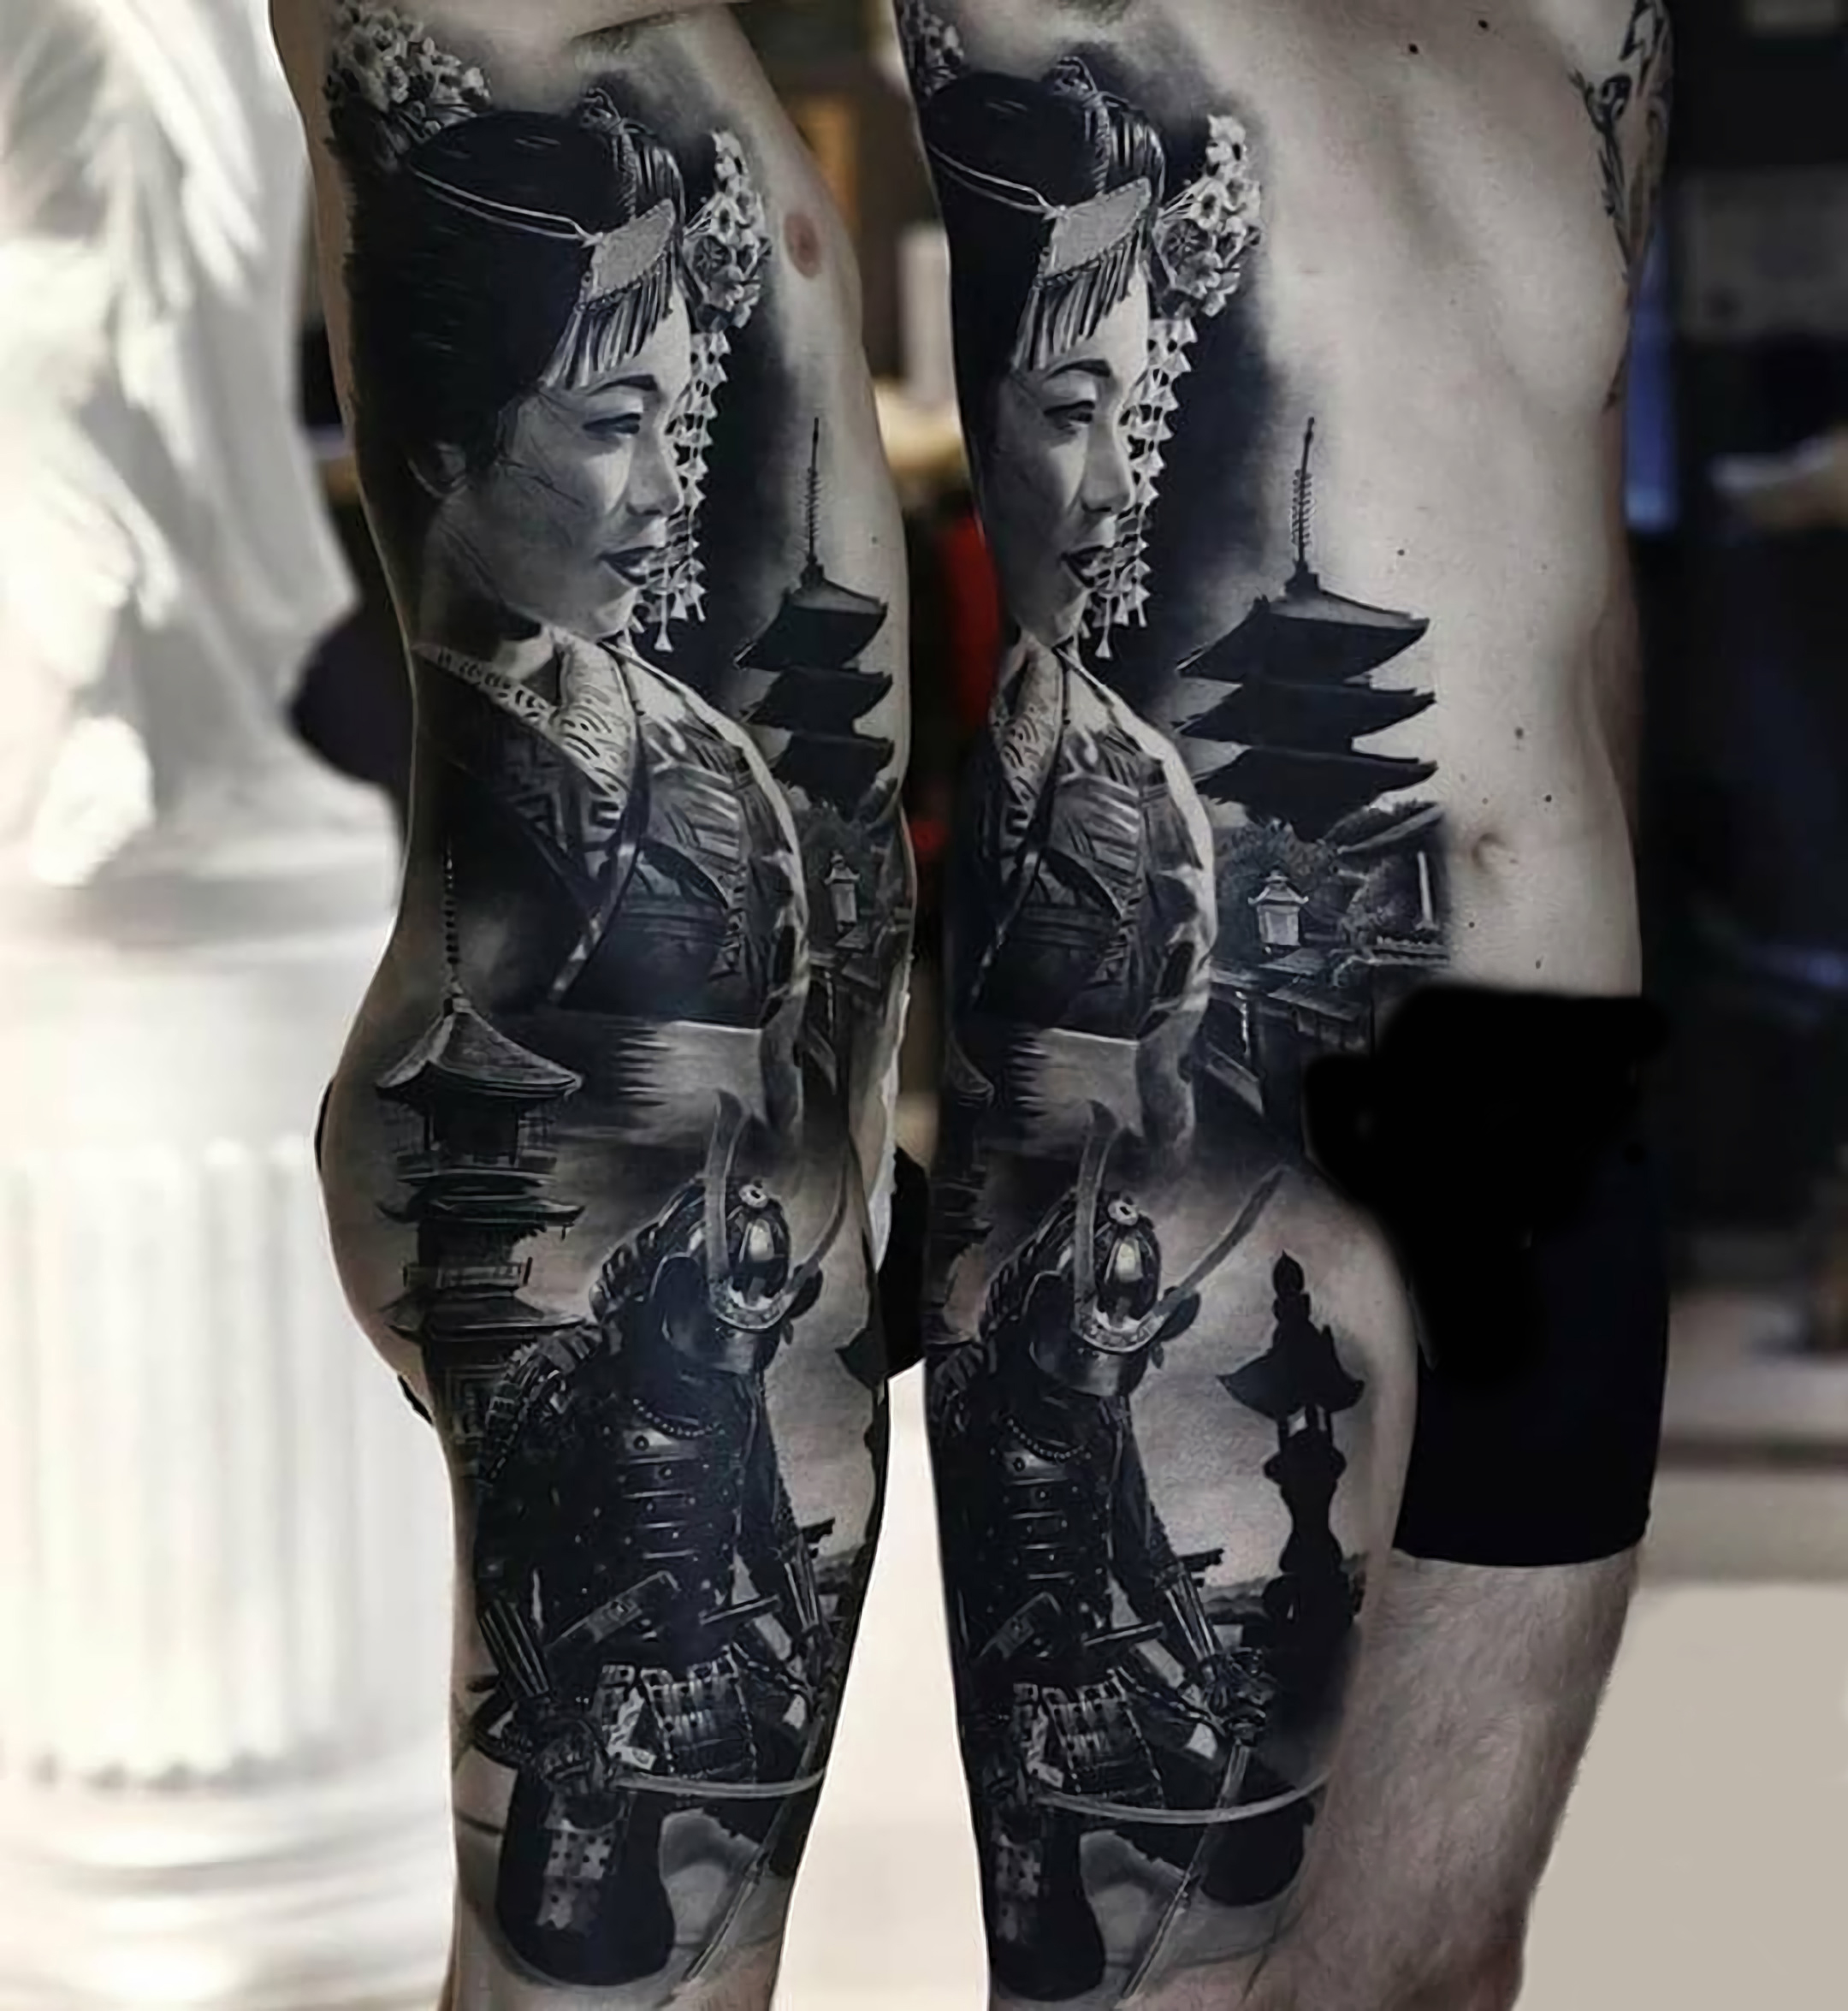 Very serious tattoo, on the whole body in Japanese style